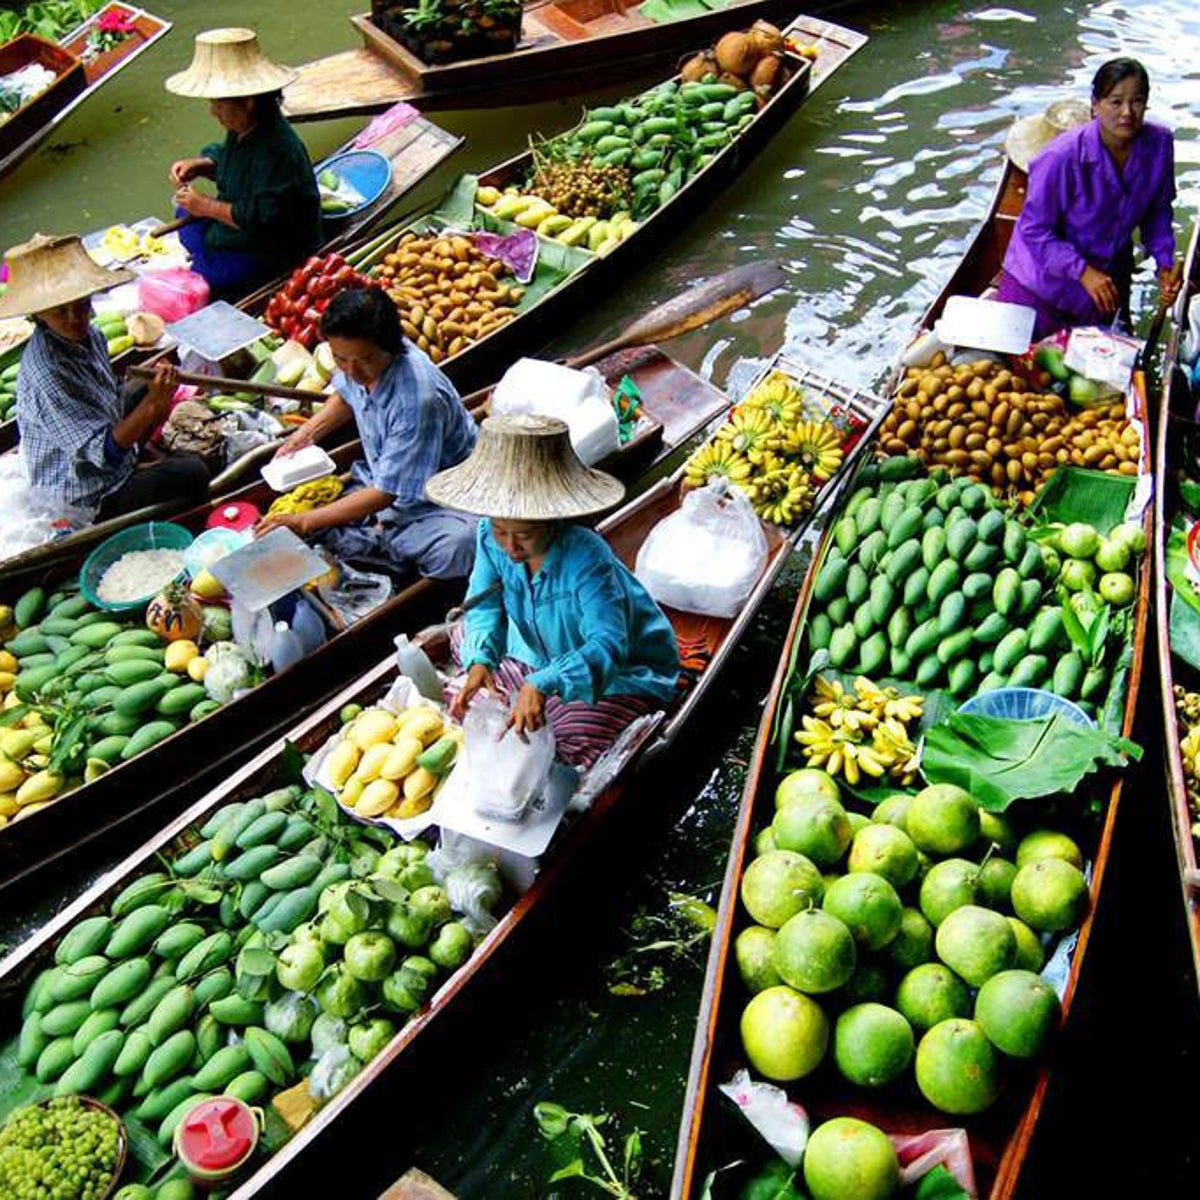 Boats at a produce market in Thailand